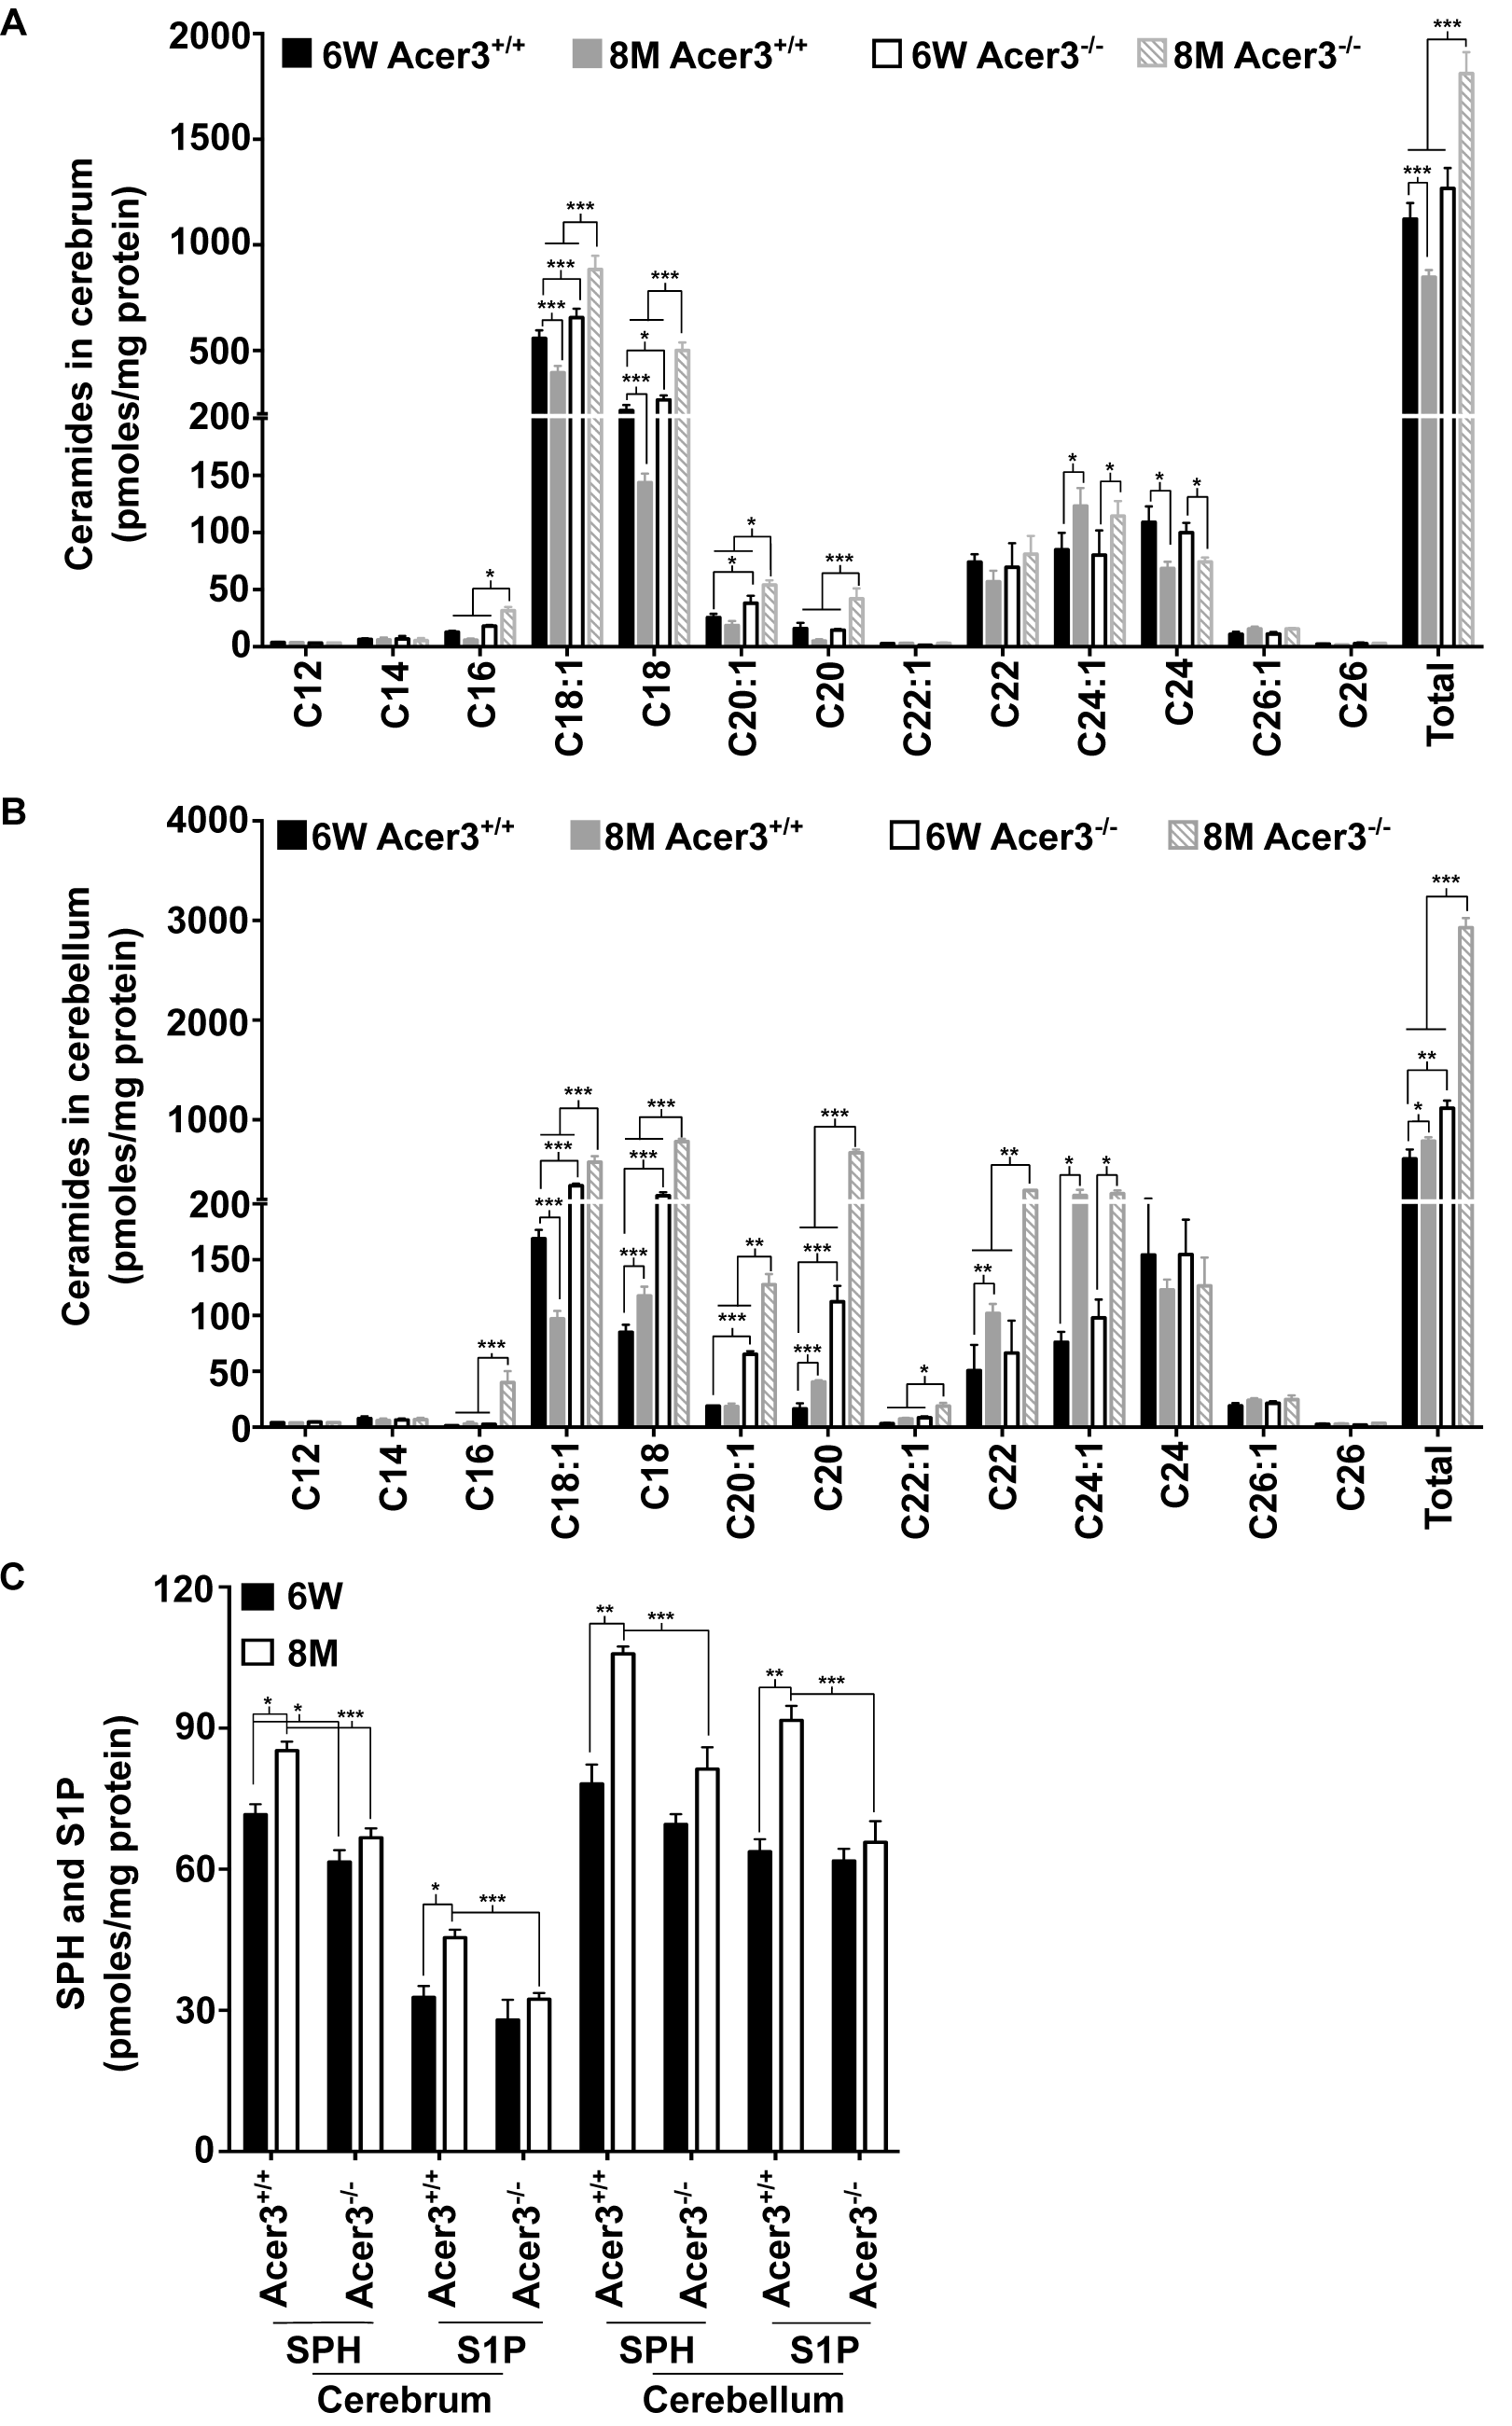 Acer3 upregulation is important for the homeostasis of ceramides, SPH, and S1P in aging brain.